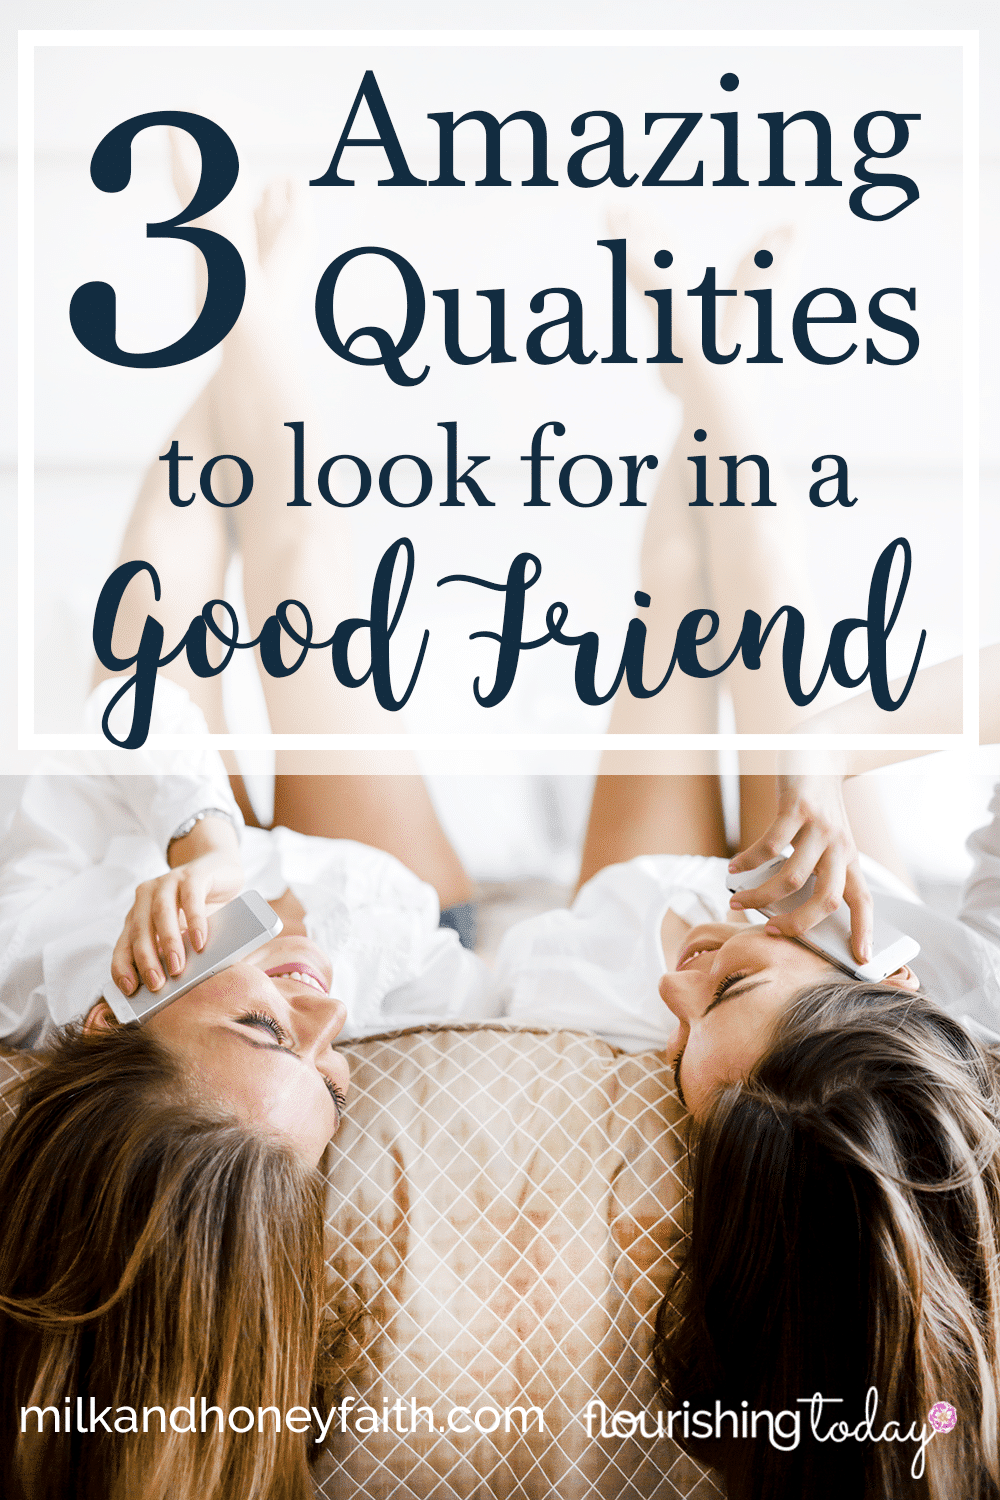 What do you look for in a friend? Good friends are not easily found. But there are qualities in a good friend we can look for. Join us as cover a few!